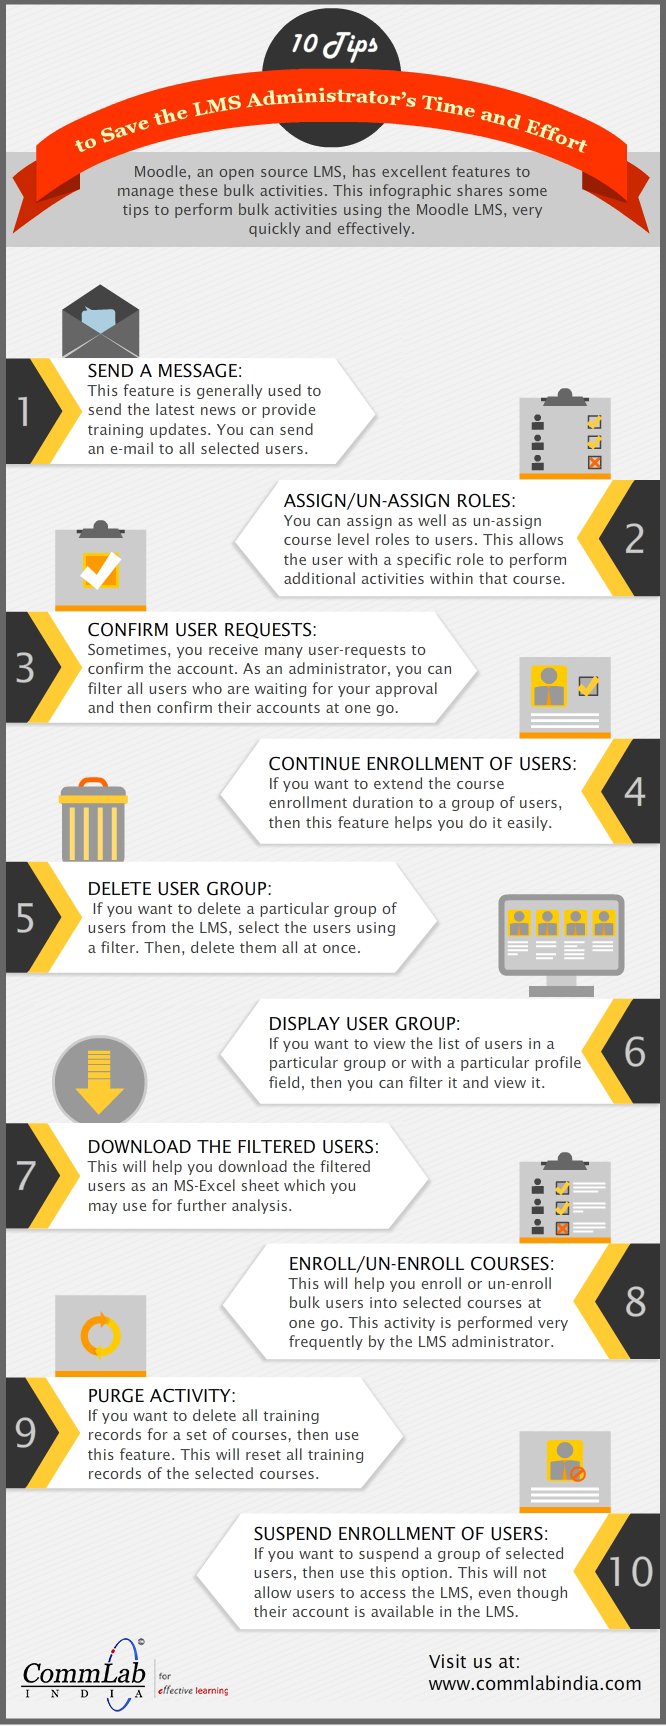 10 Proven Tips for Efficient LMS Administration - An Infographic